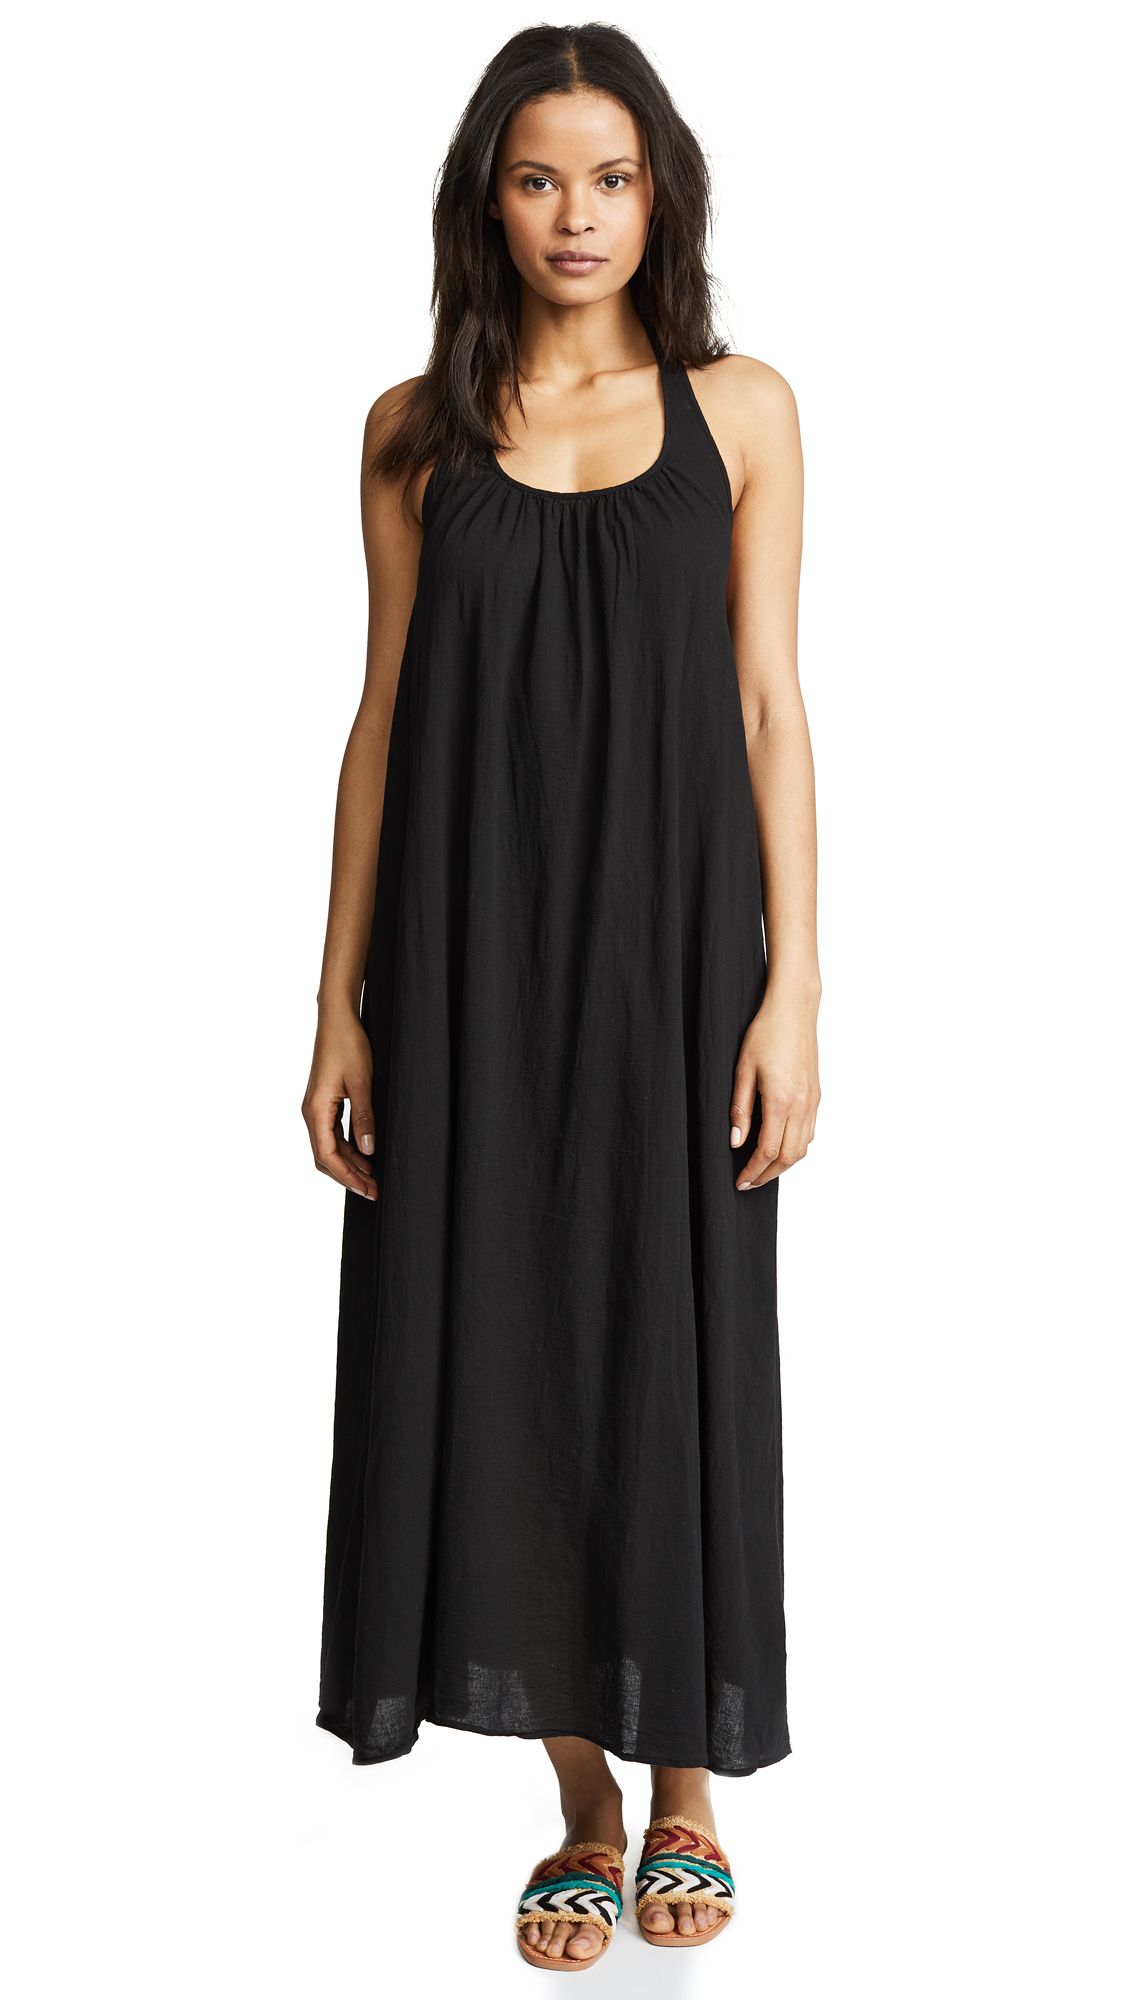 9seed Antigua Cover Up Dress In Black